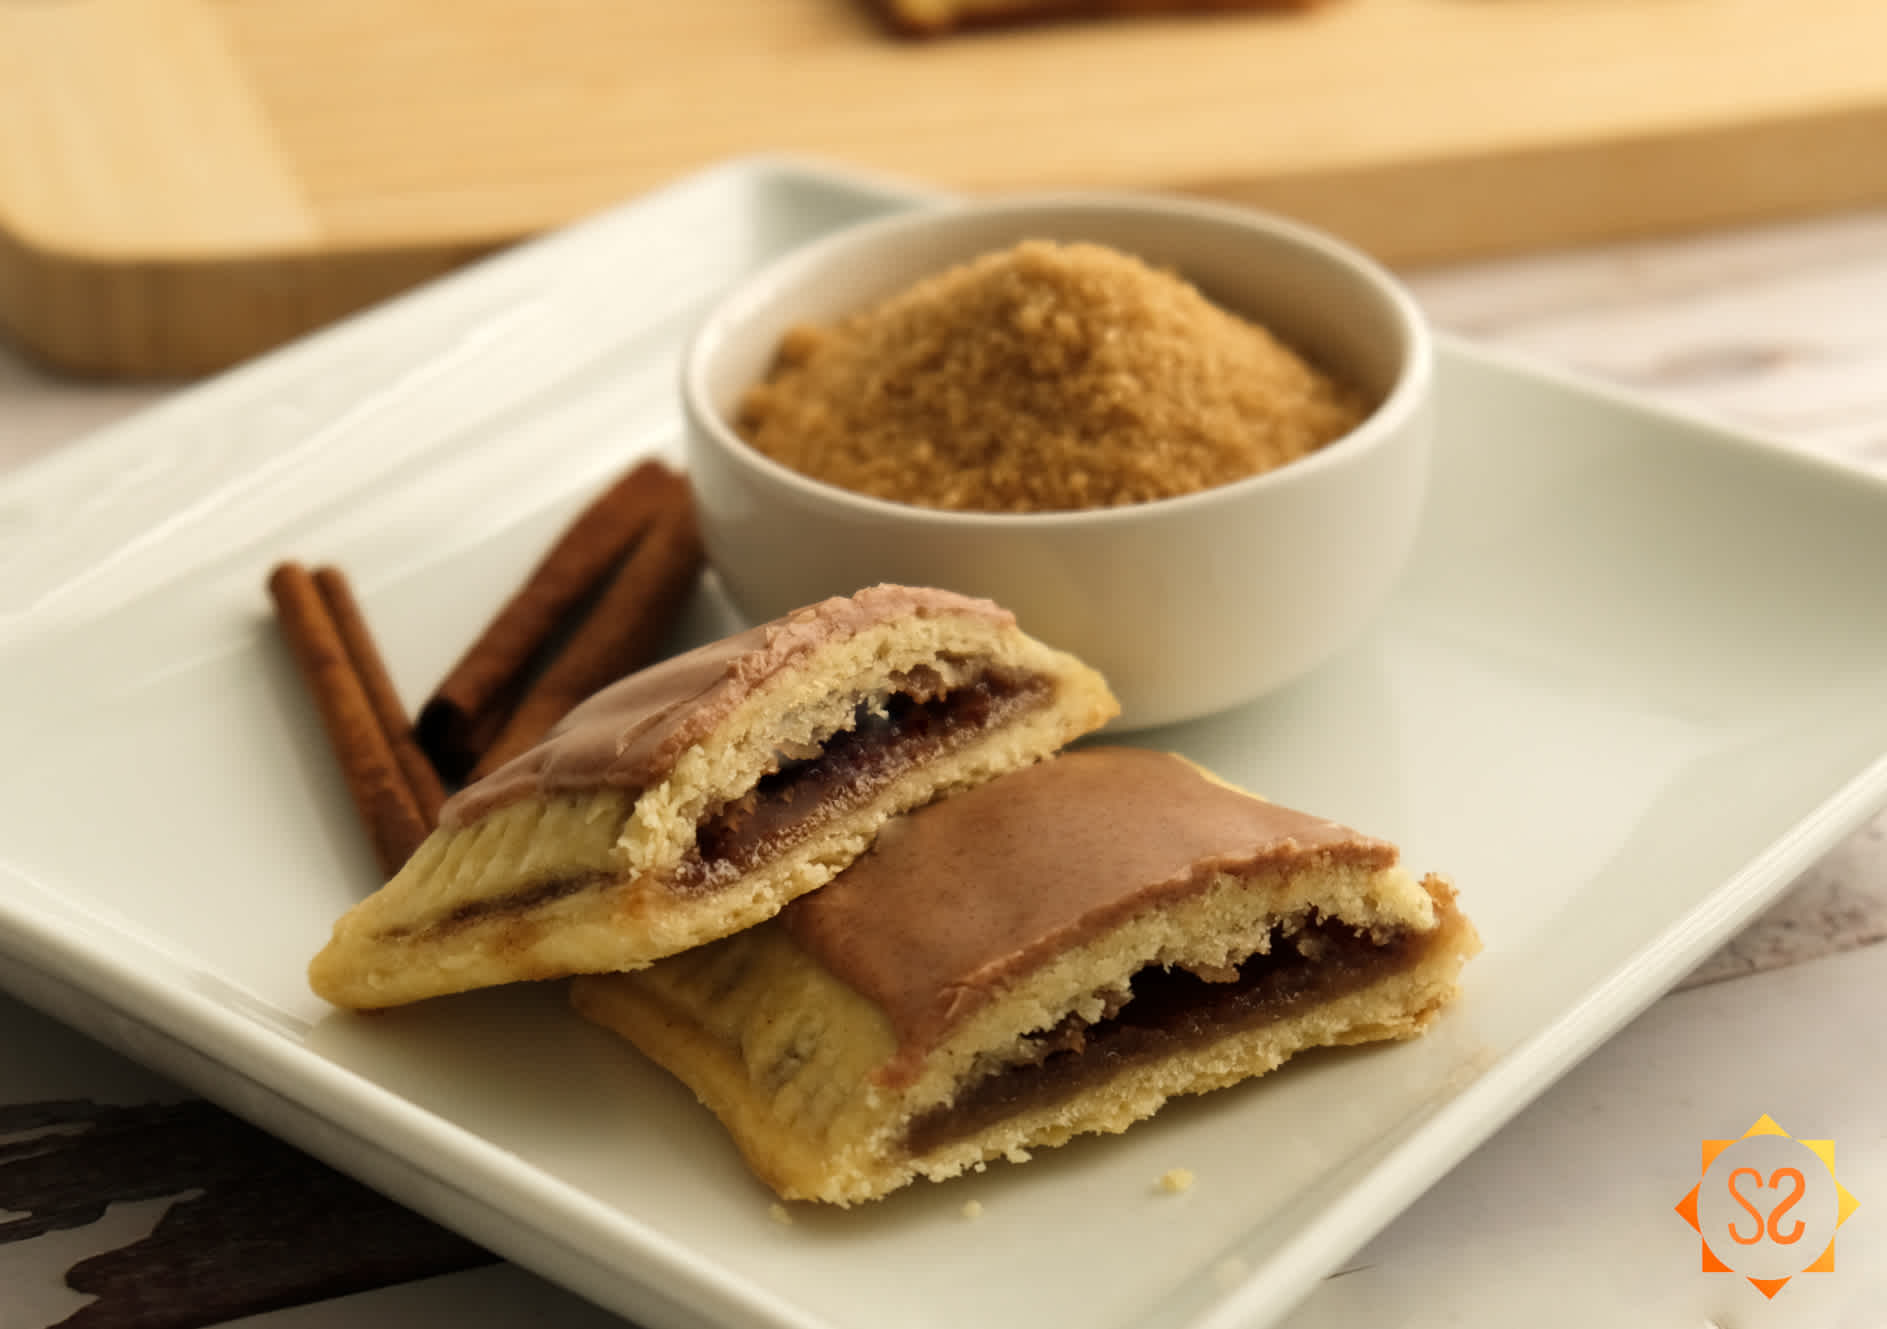 Homemade brown sugar and cinnamon Pop-tart on a plate with a dish of brown sugar and cinnamon sticks behind it